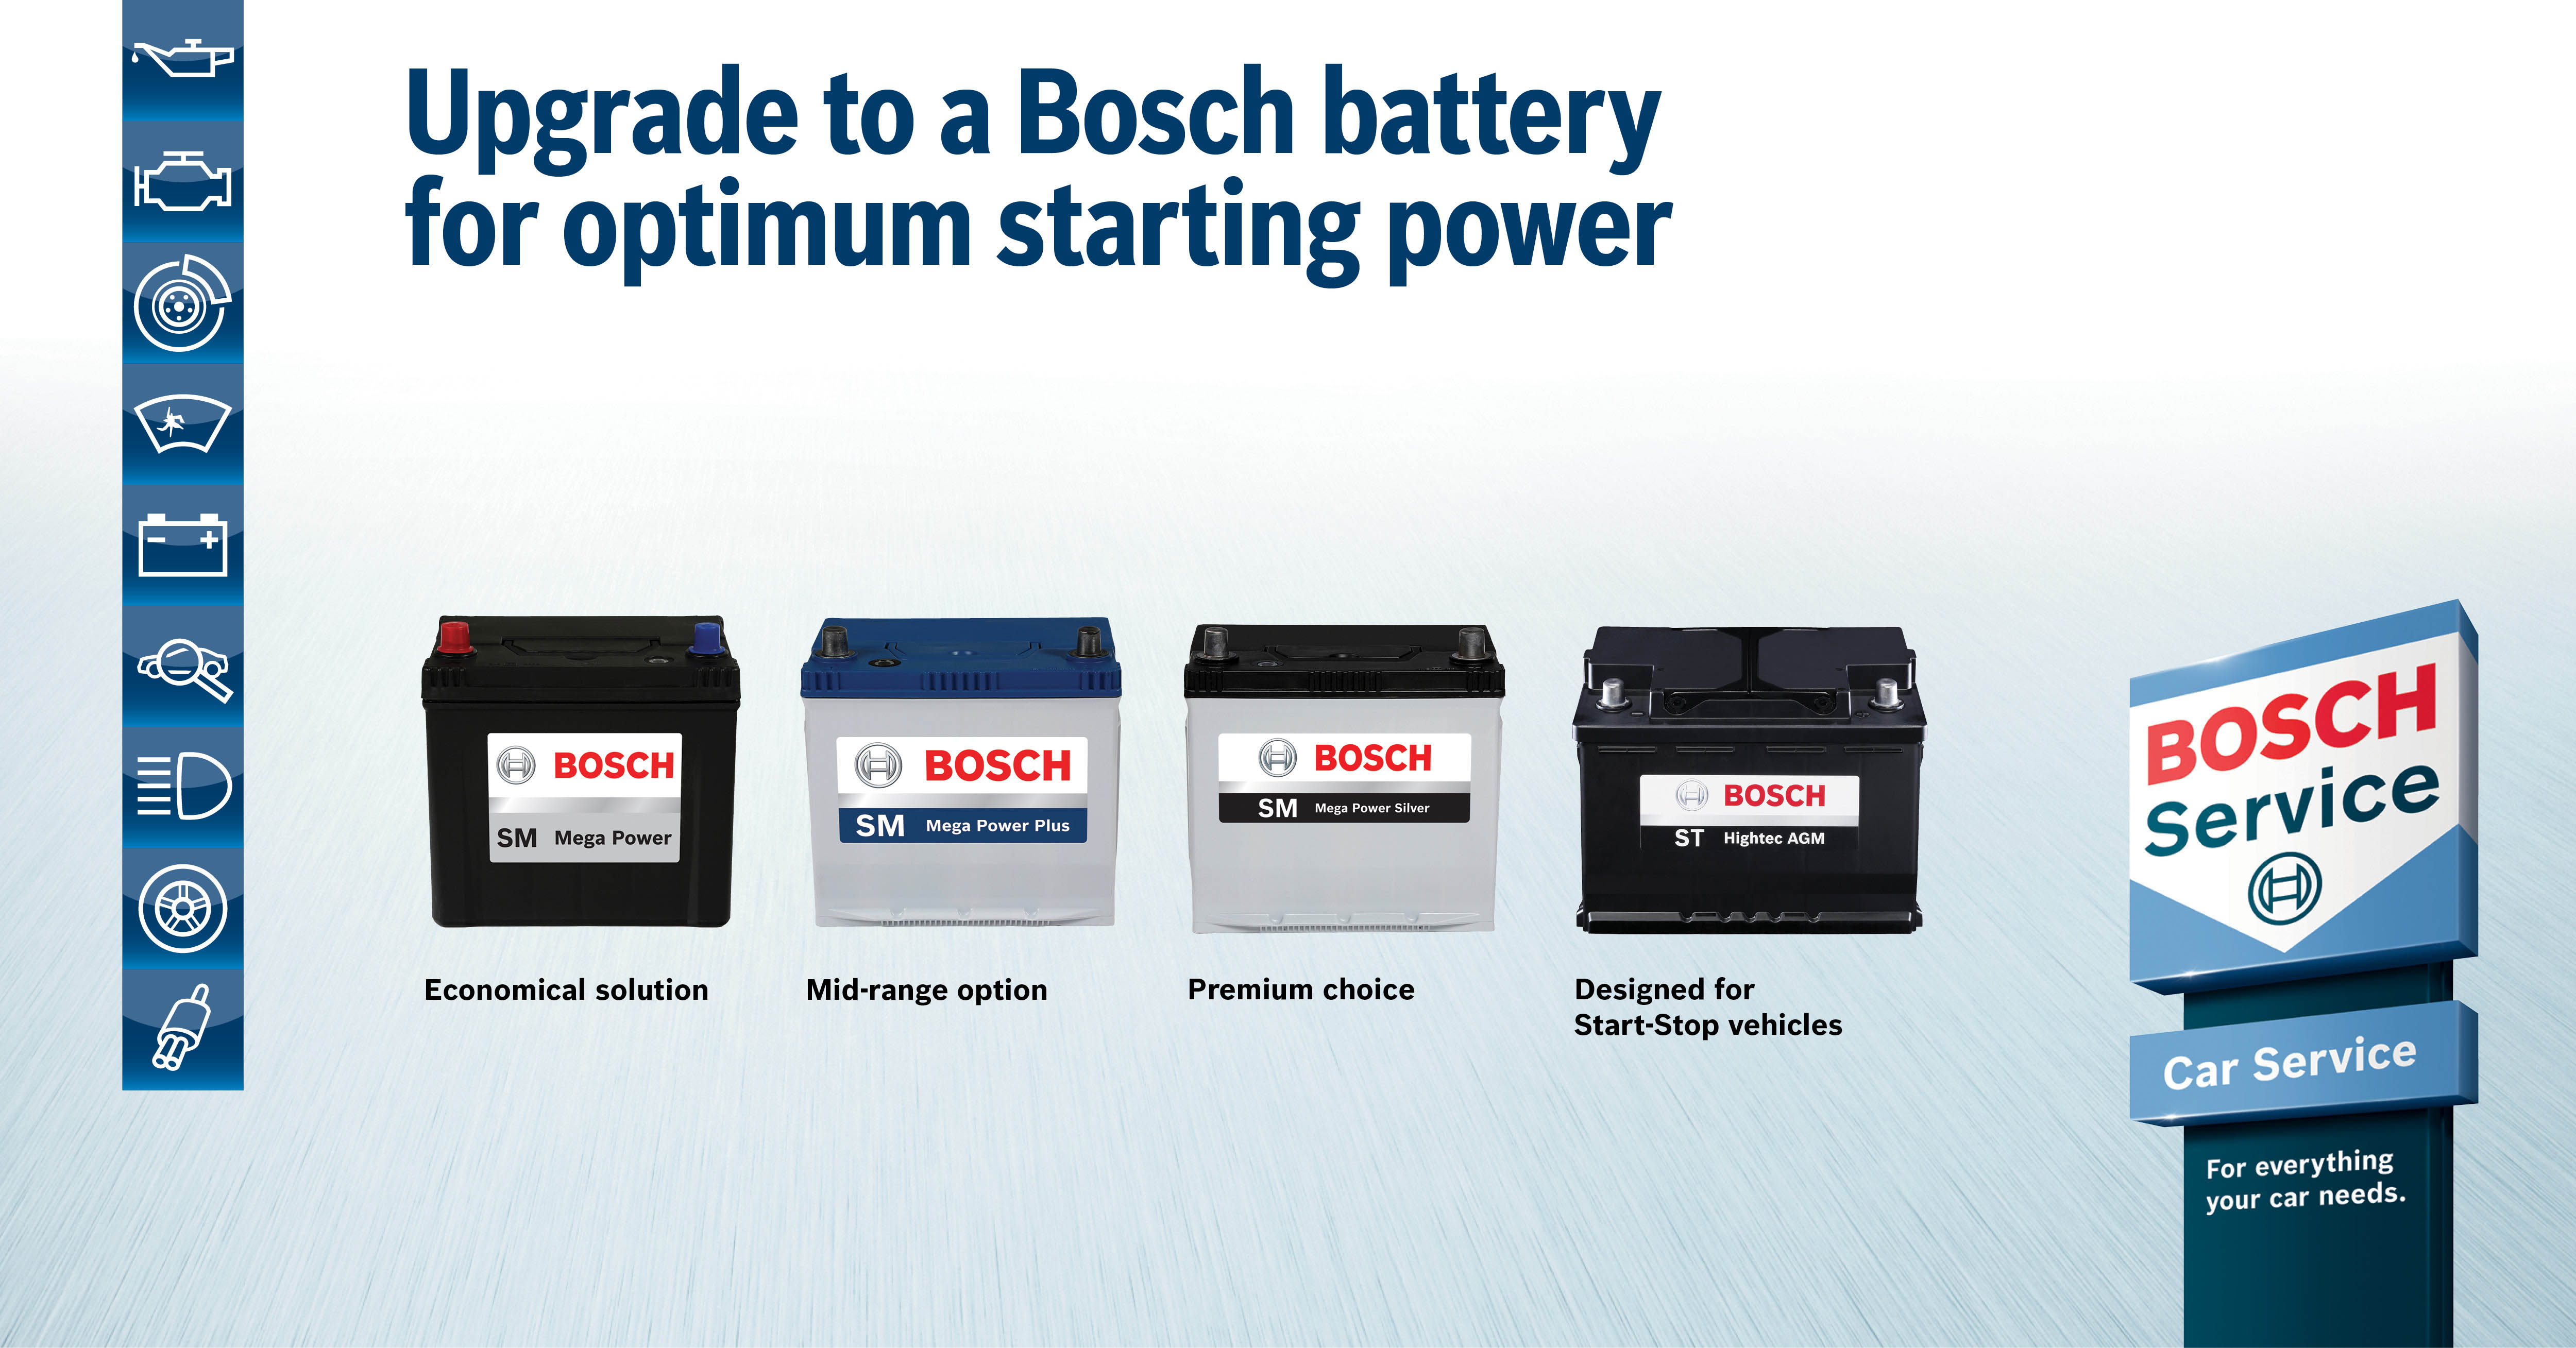 Bosch Batteries are best